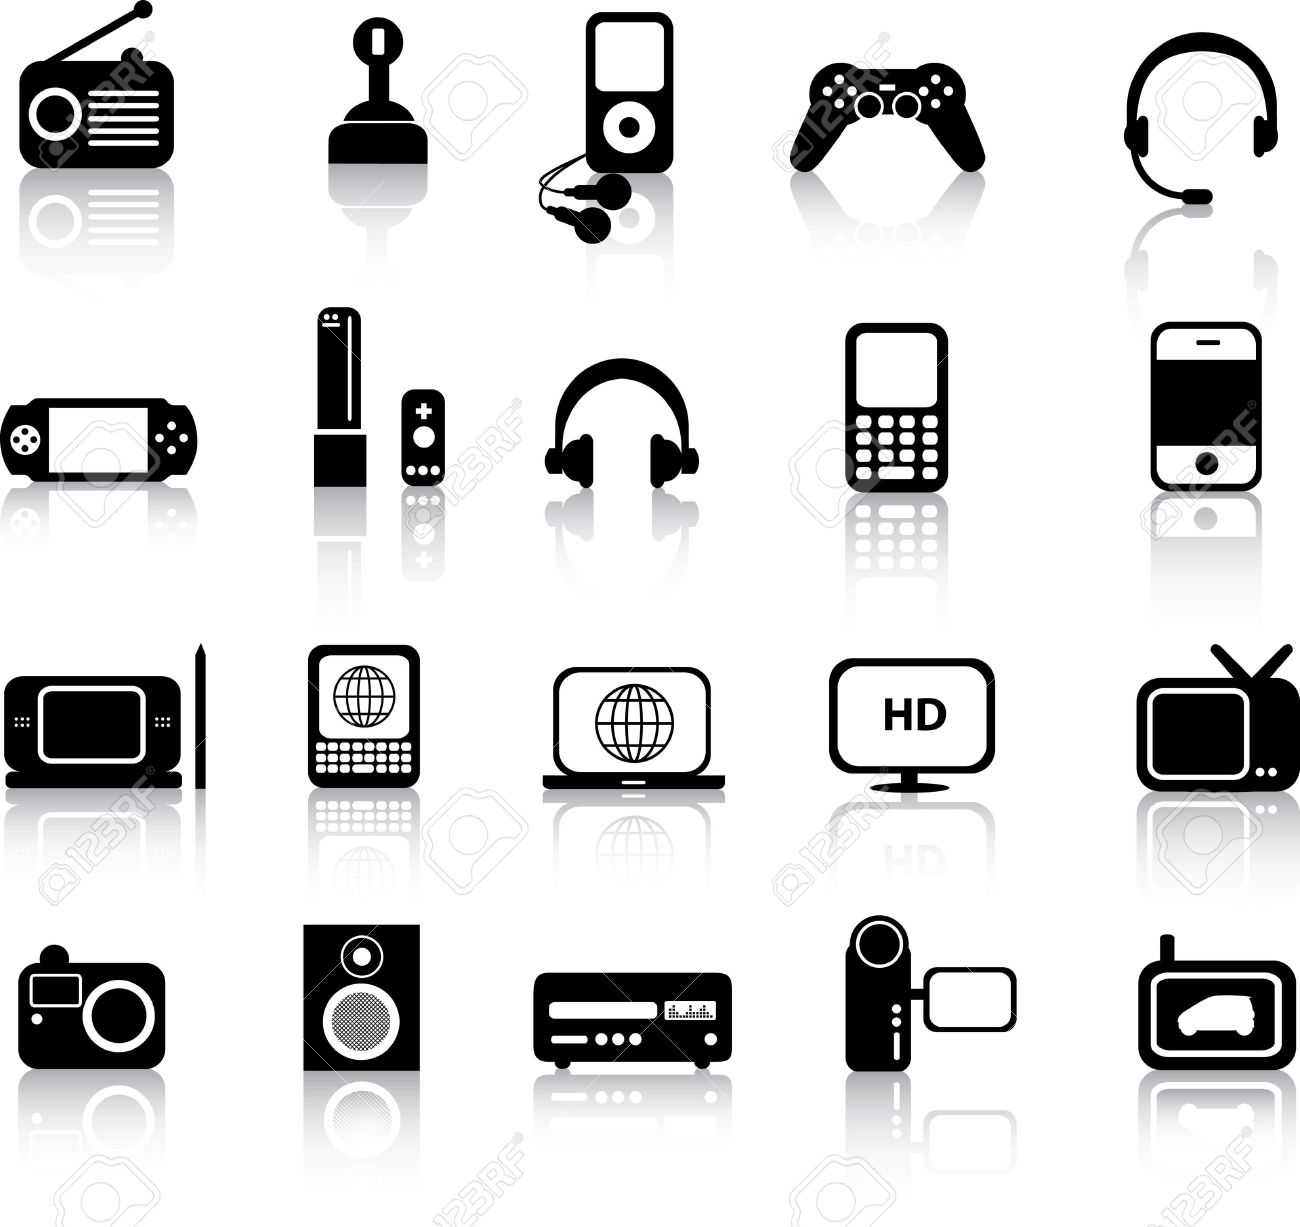 Device Clipart.